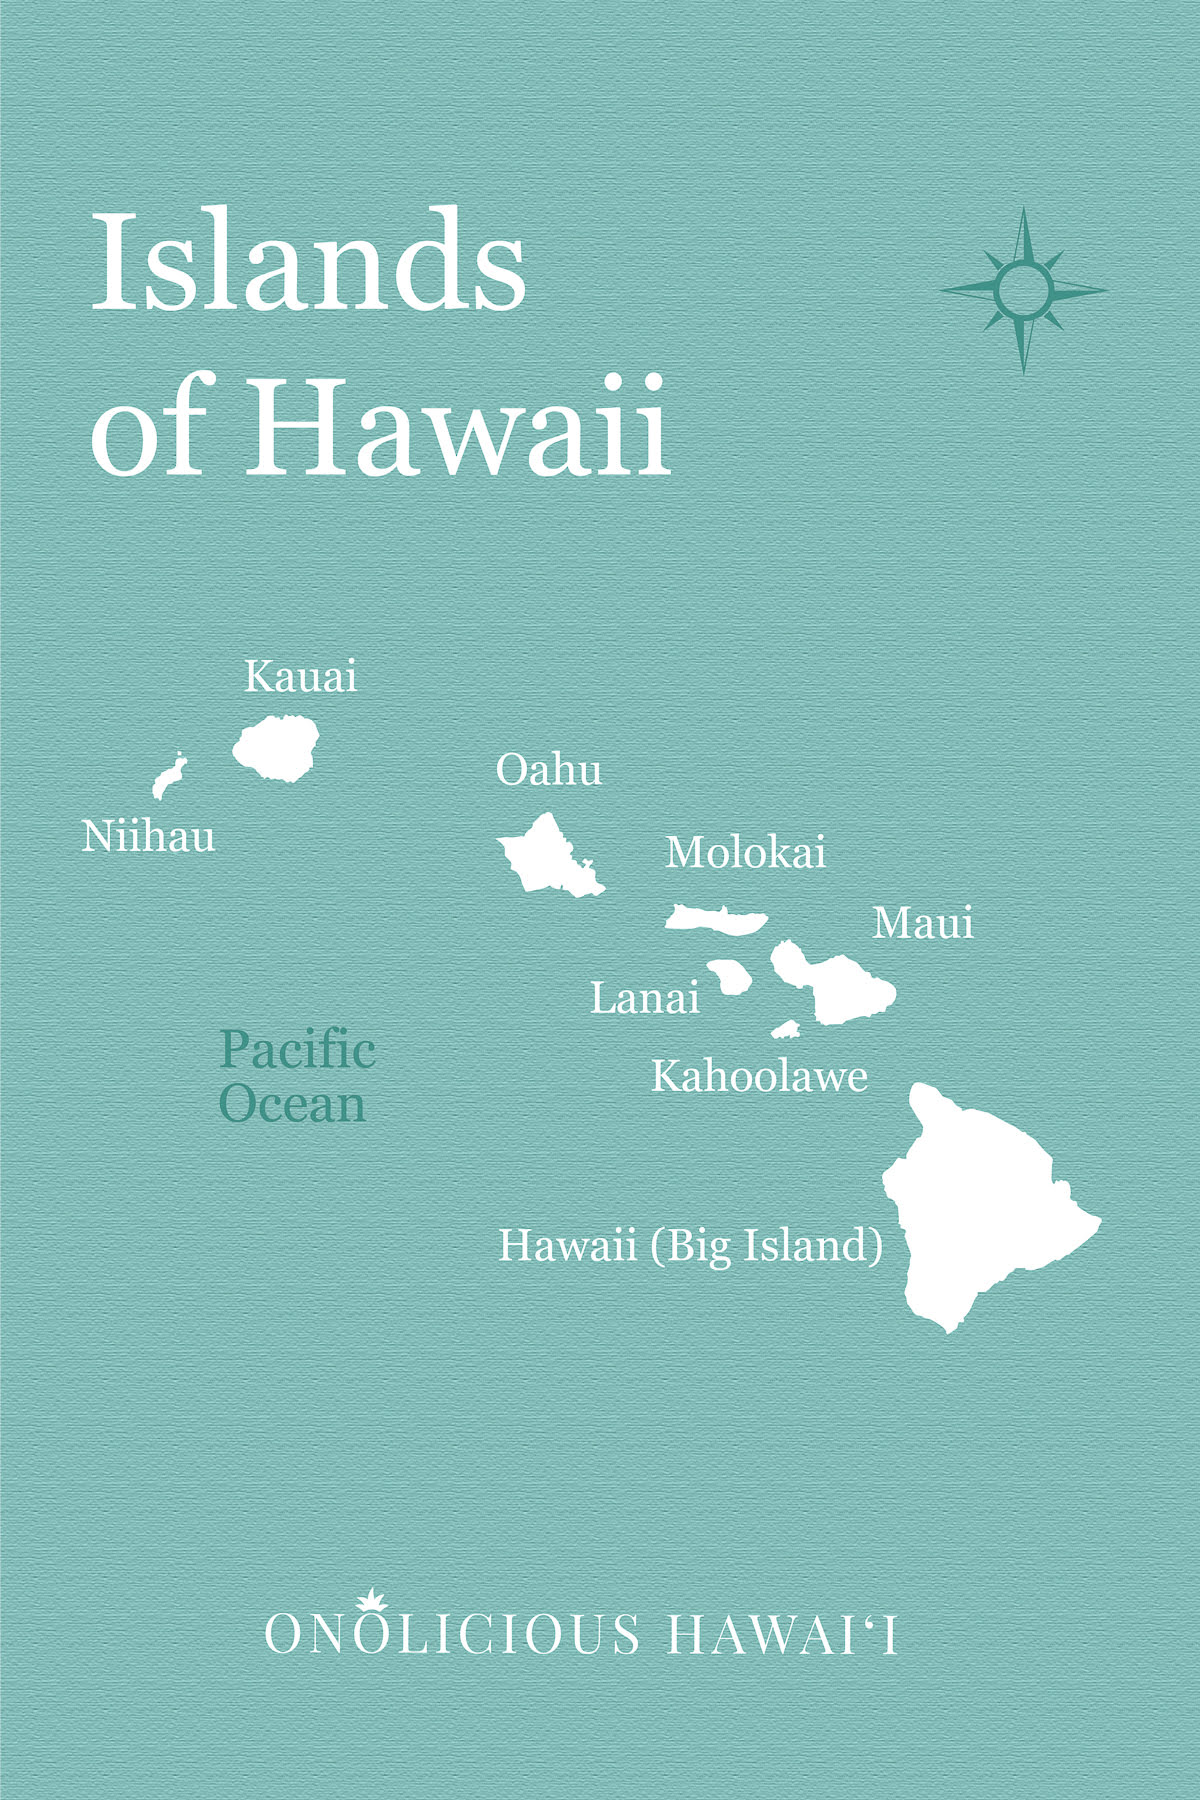 A simple map showing the main islands of Hawaii.